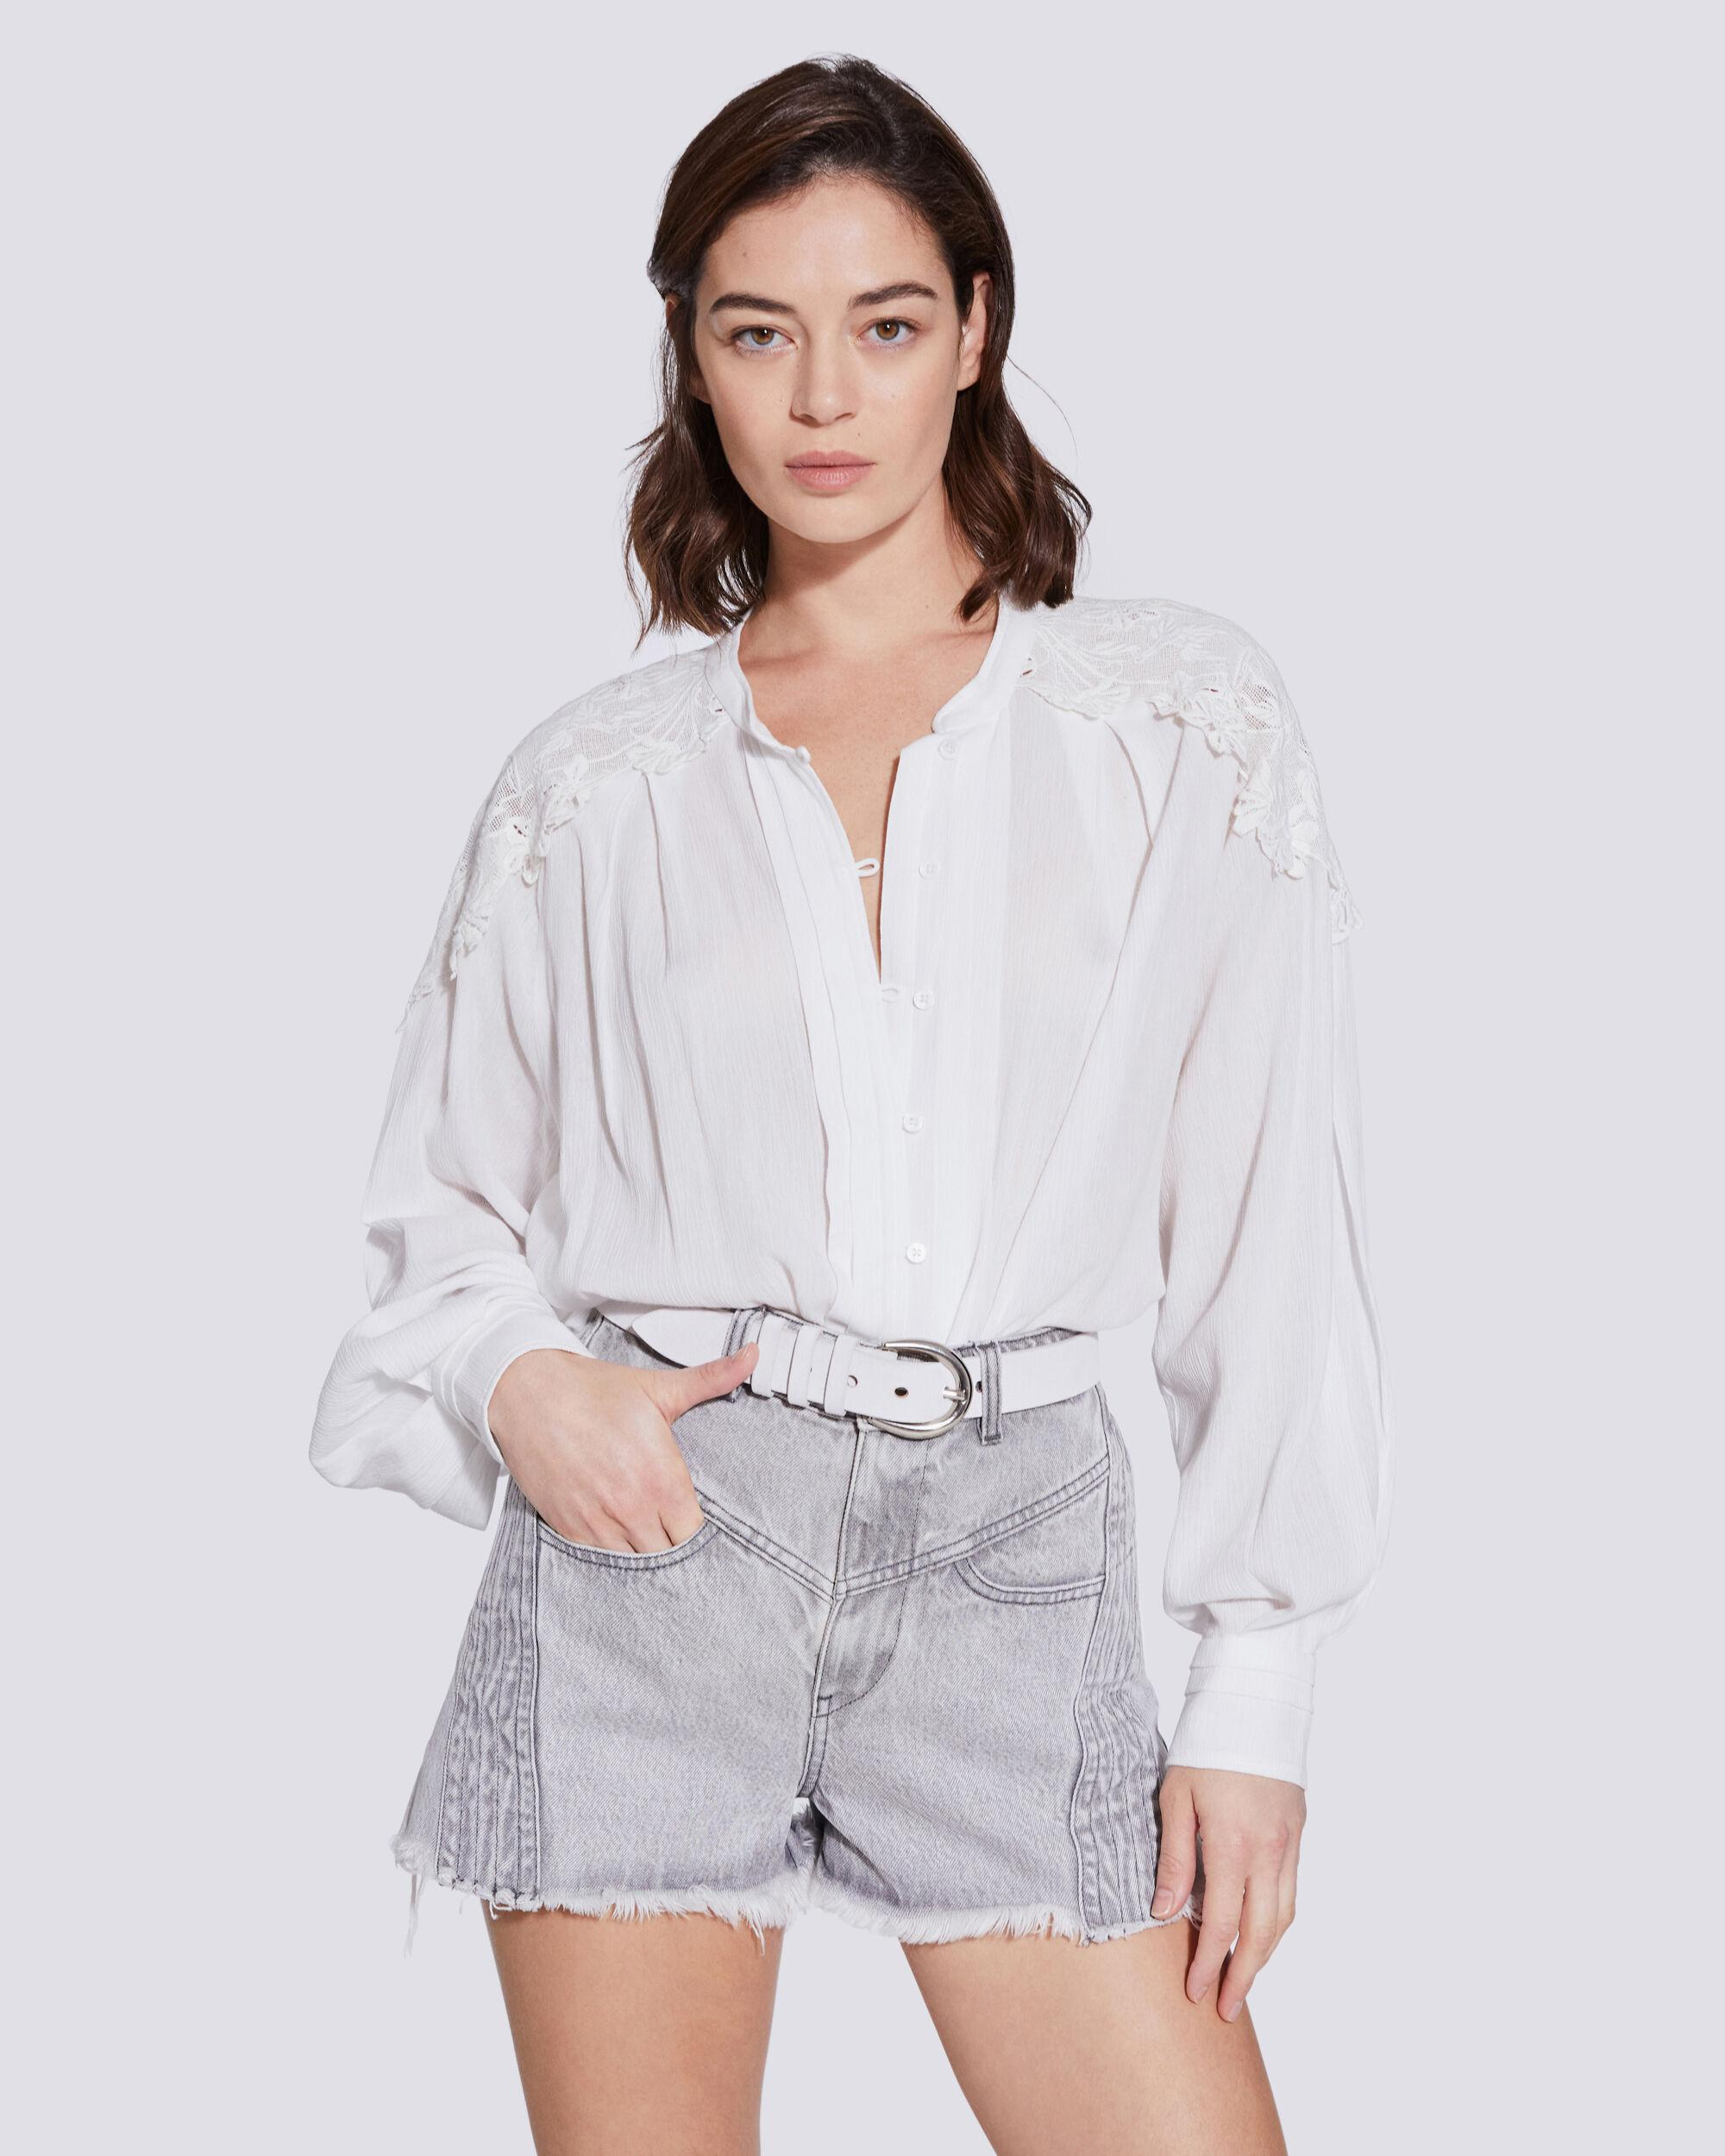 CALISTO LACE BUTTON UP SHIRT